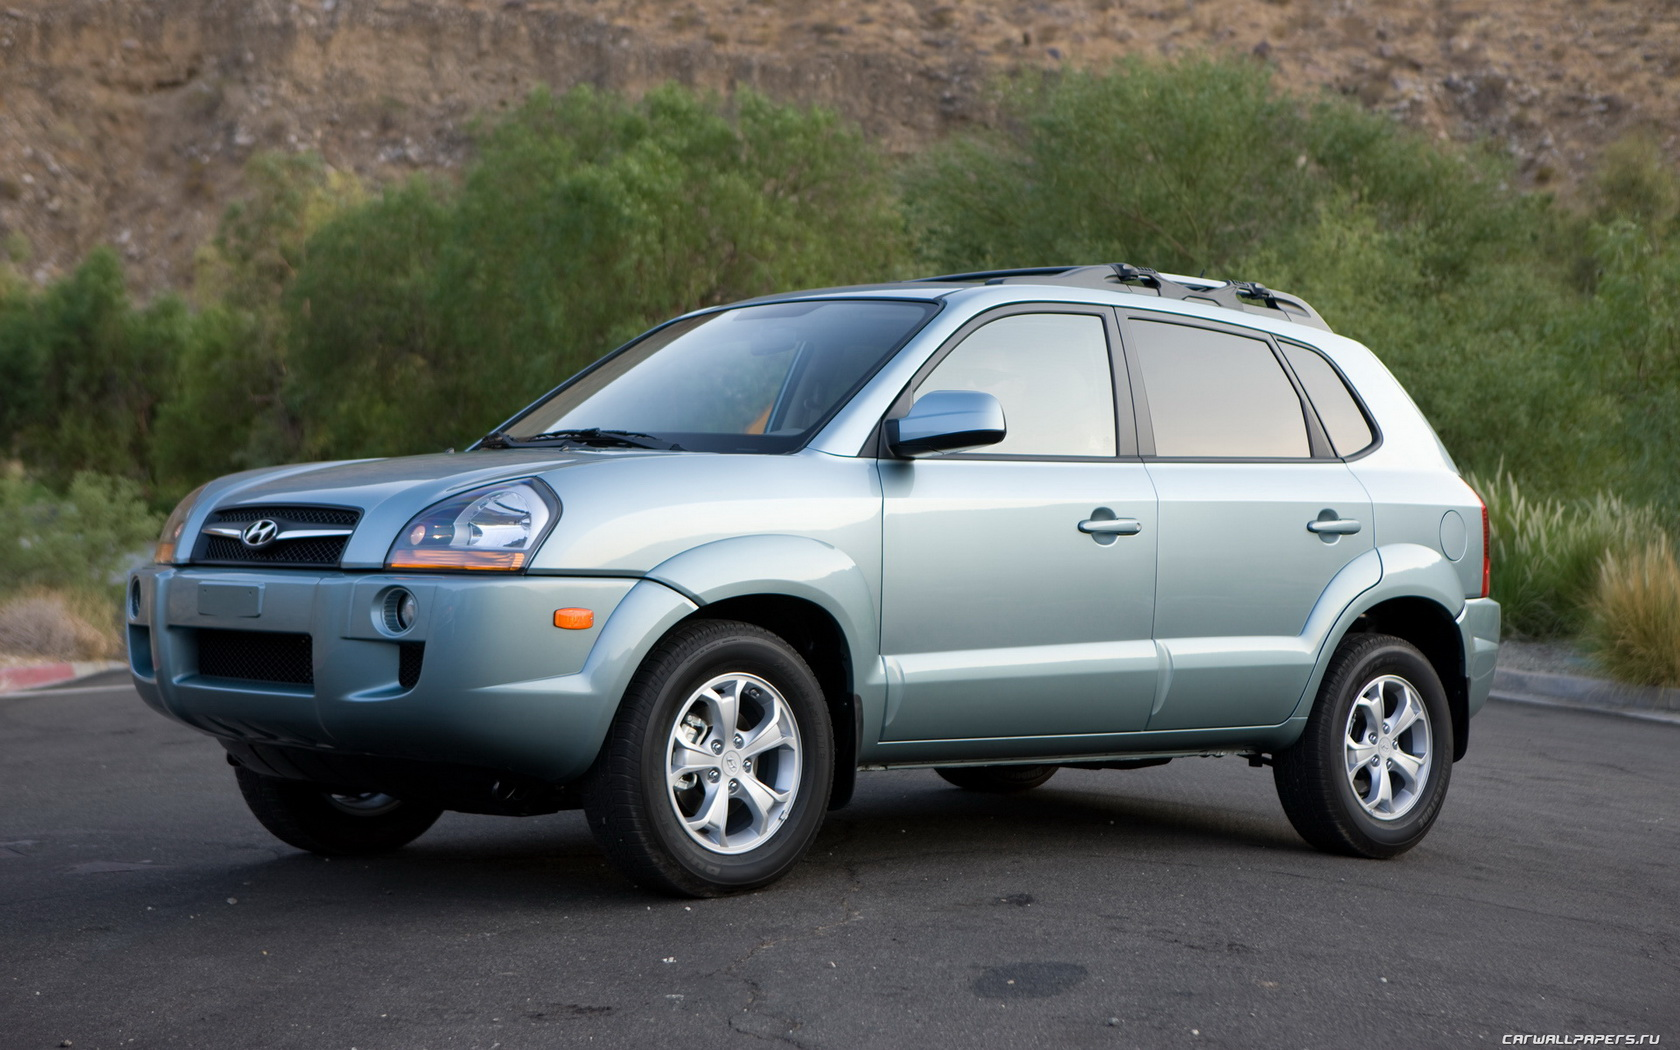 2009 hyundai tucson ii pictures information and specs. Black Bedroom Furniture Sets. Home Design Ideas